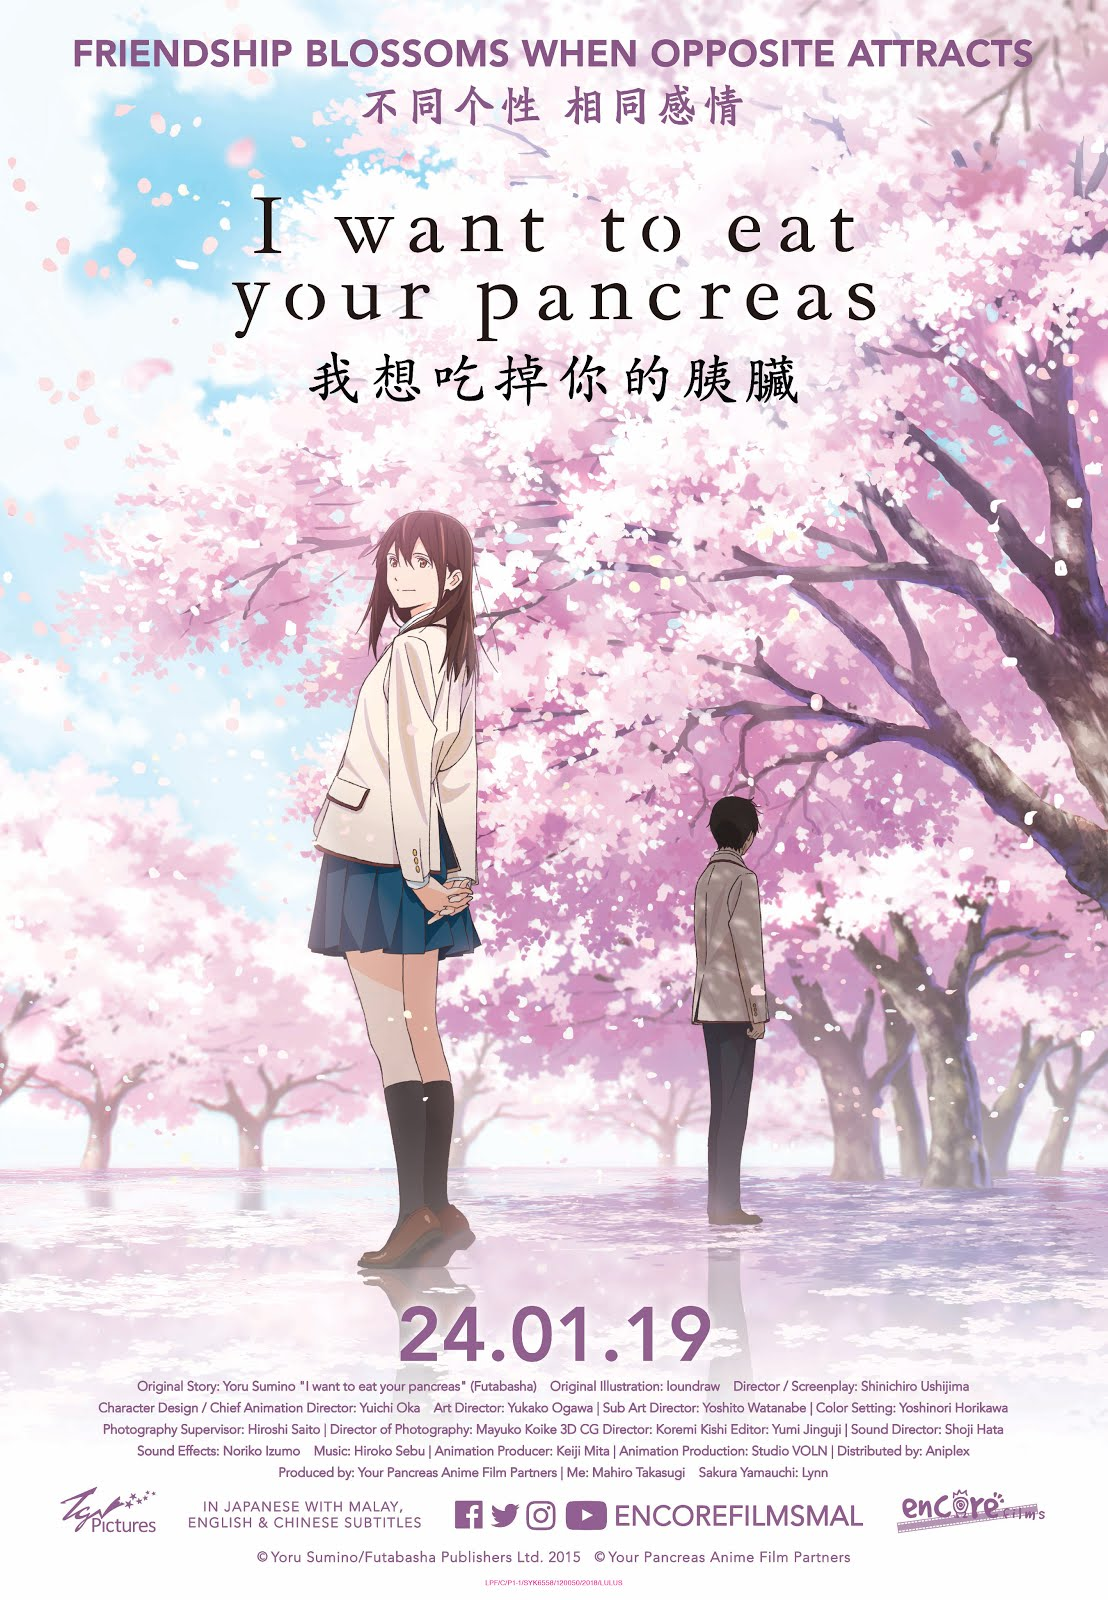 PERADUAN FILEM : I WANT TO EAT YOUR PANCREAS